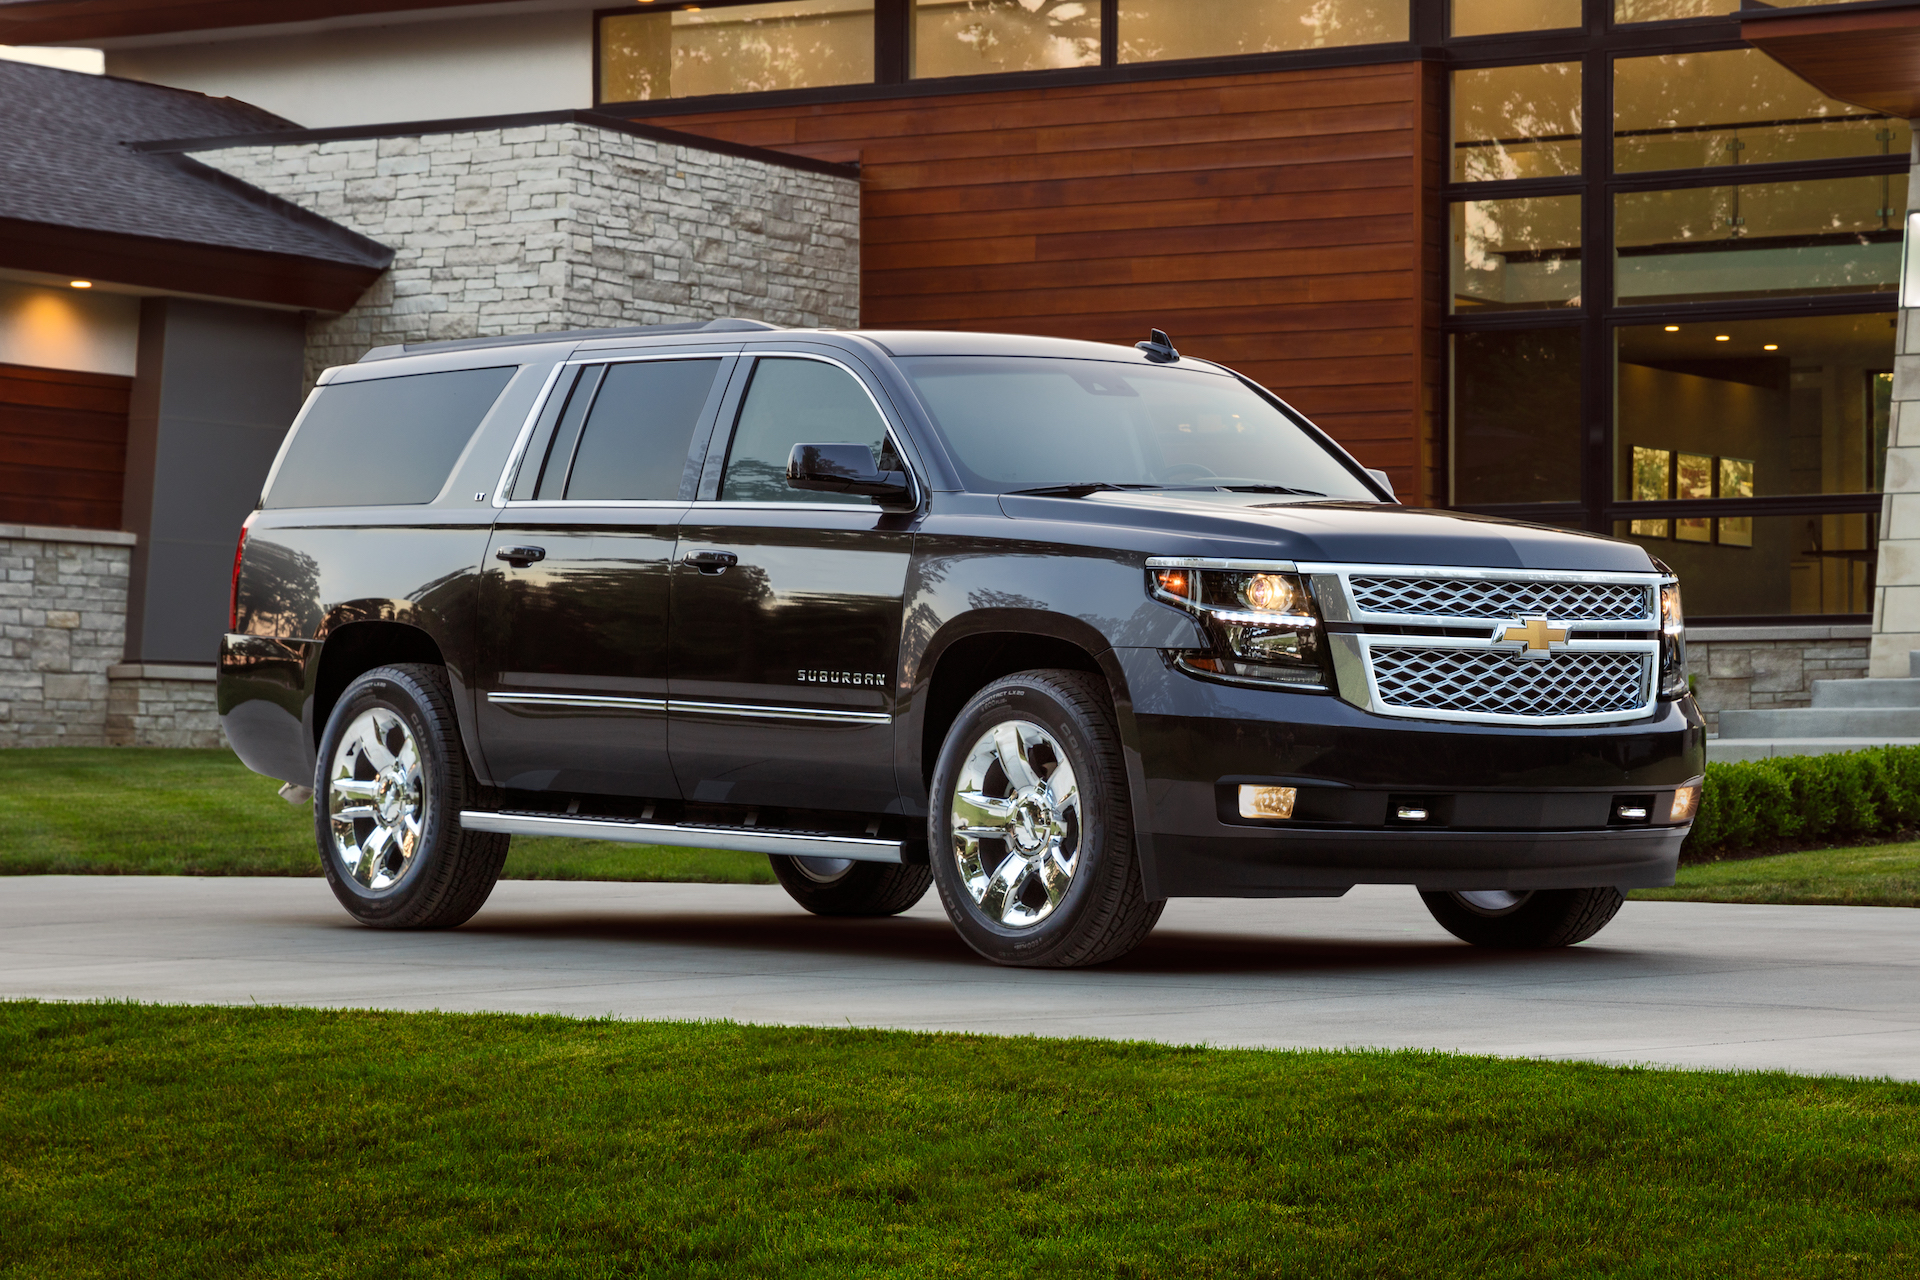 Gm Recalls Raft Of Cadillac Chevy And Gmc Vehicles Over Noncompliant Seatbelts